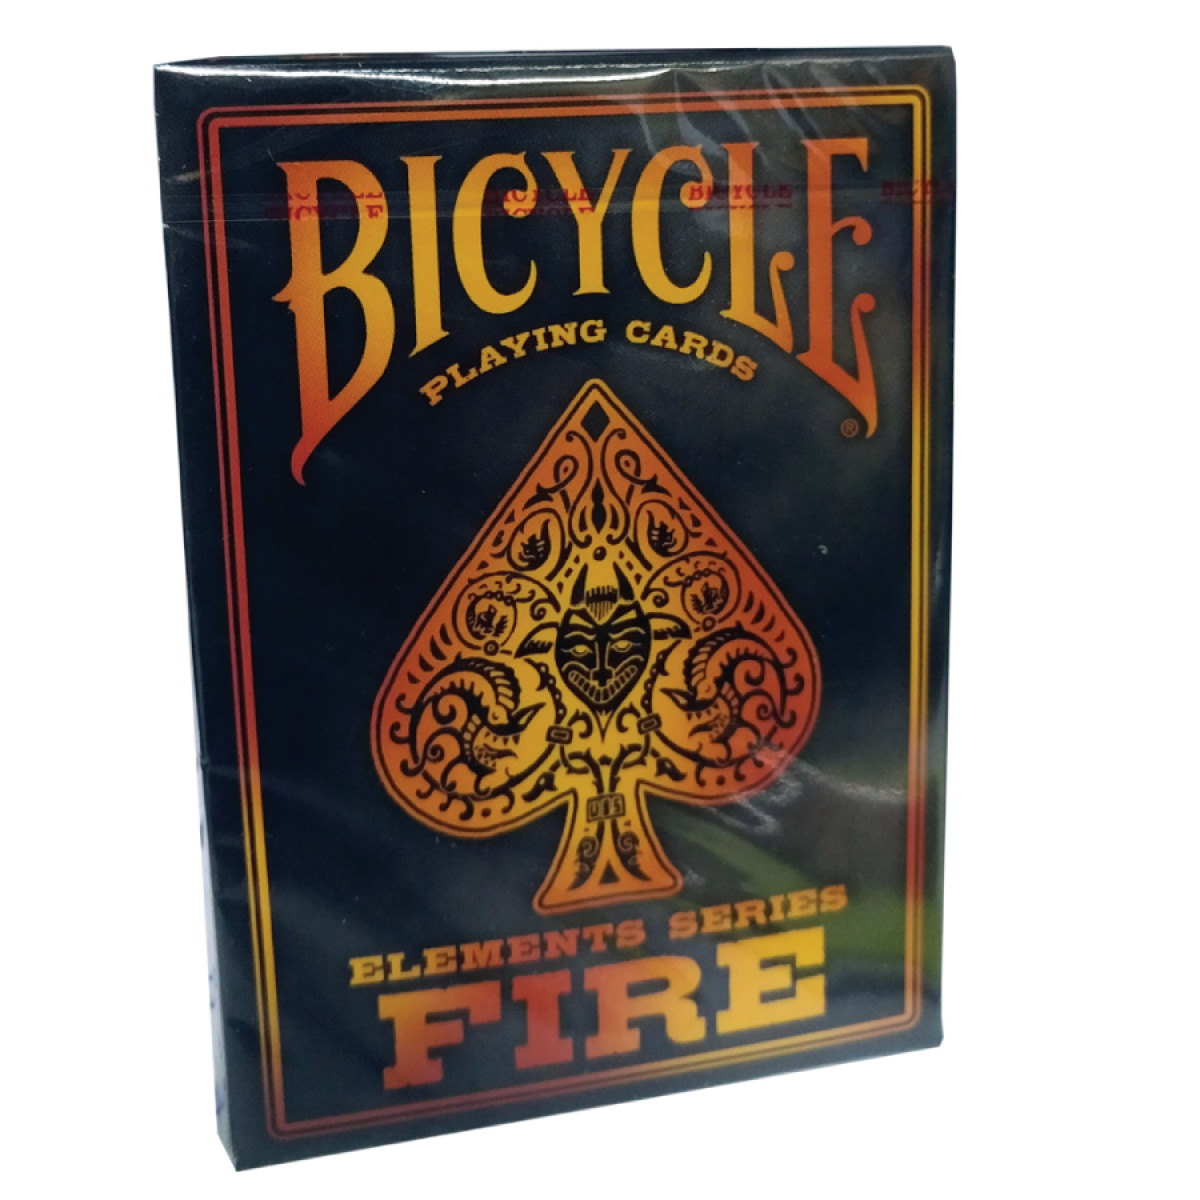 Bicycle Fire Horse Bicycle Playing Cards